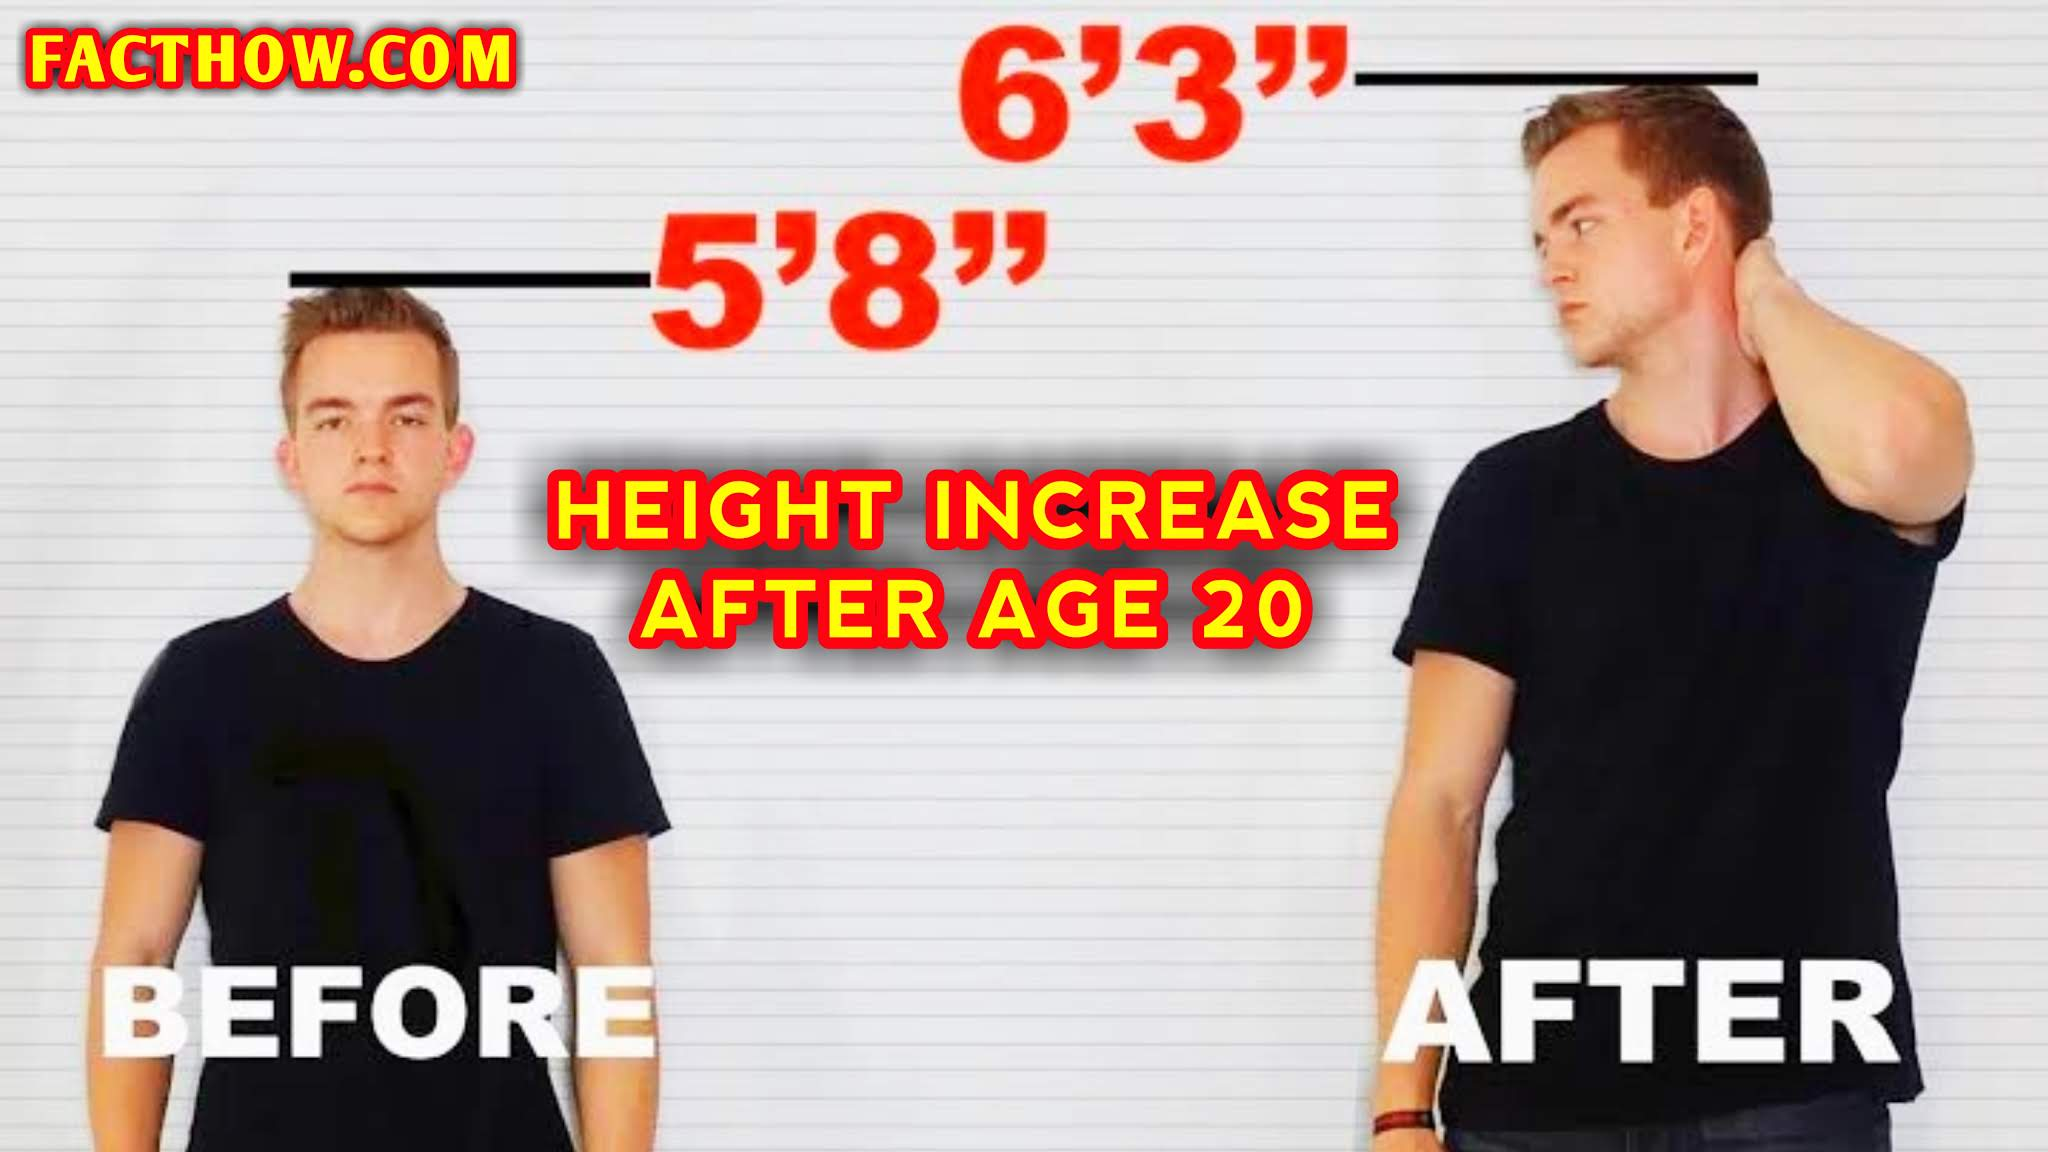 Increase-height-after-age-20-hindi-height-increase-hacks-tips-tricks-hindi-kad-kaise-badhaaye-hindi-mai-fact-how-facthow-increase-height-program-1-month-height-proof-height-kaise-badhaaye-hacks-heights-step-up-hgh-growth-hormones-pituitary-glands